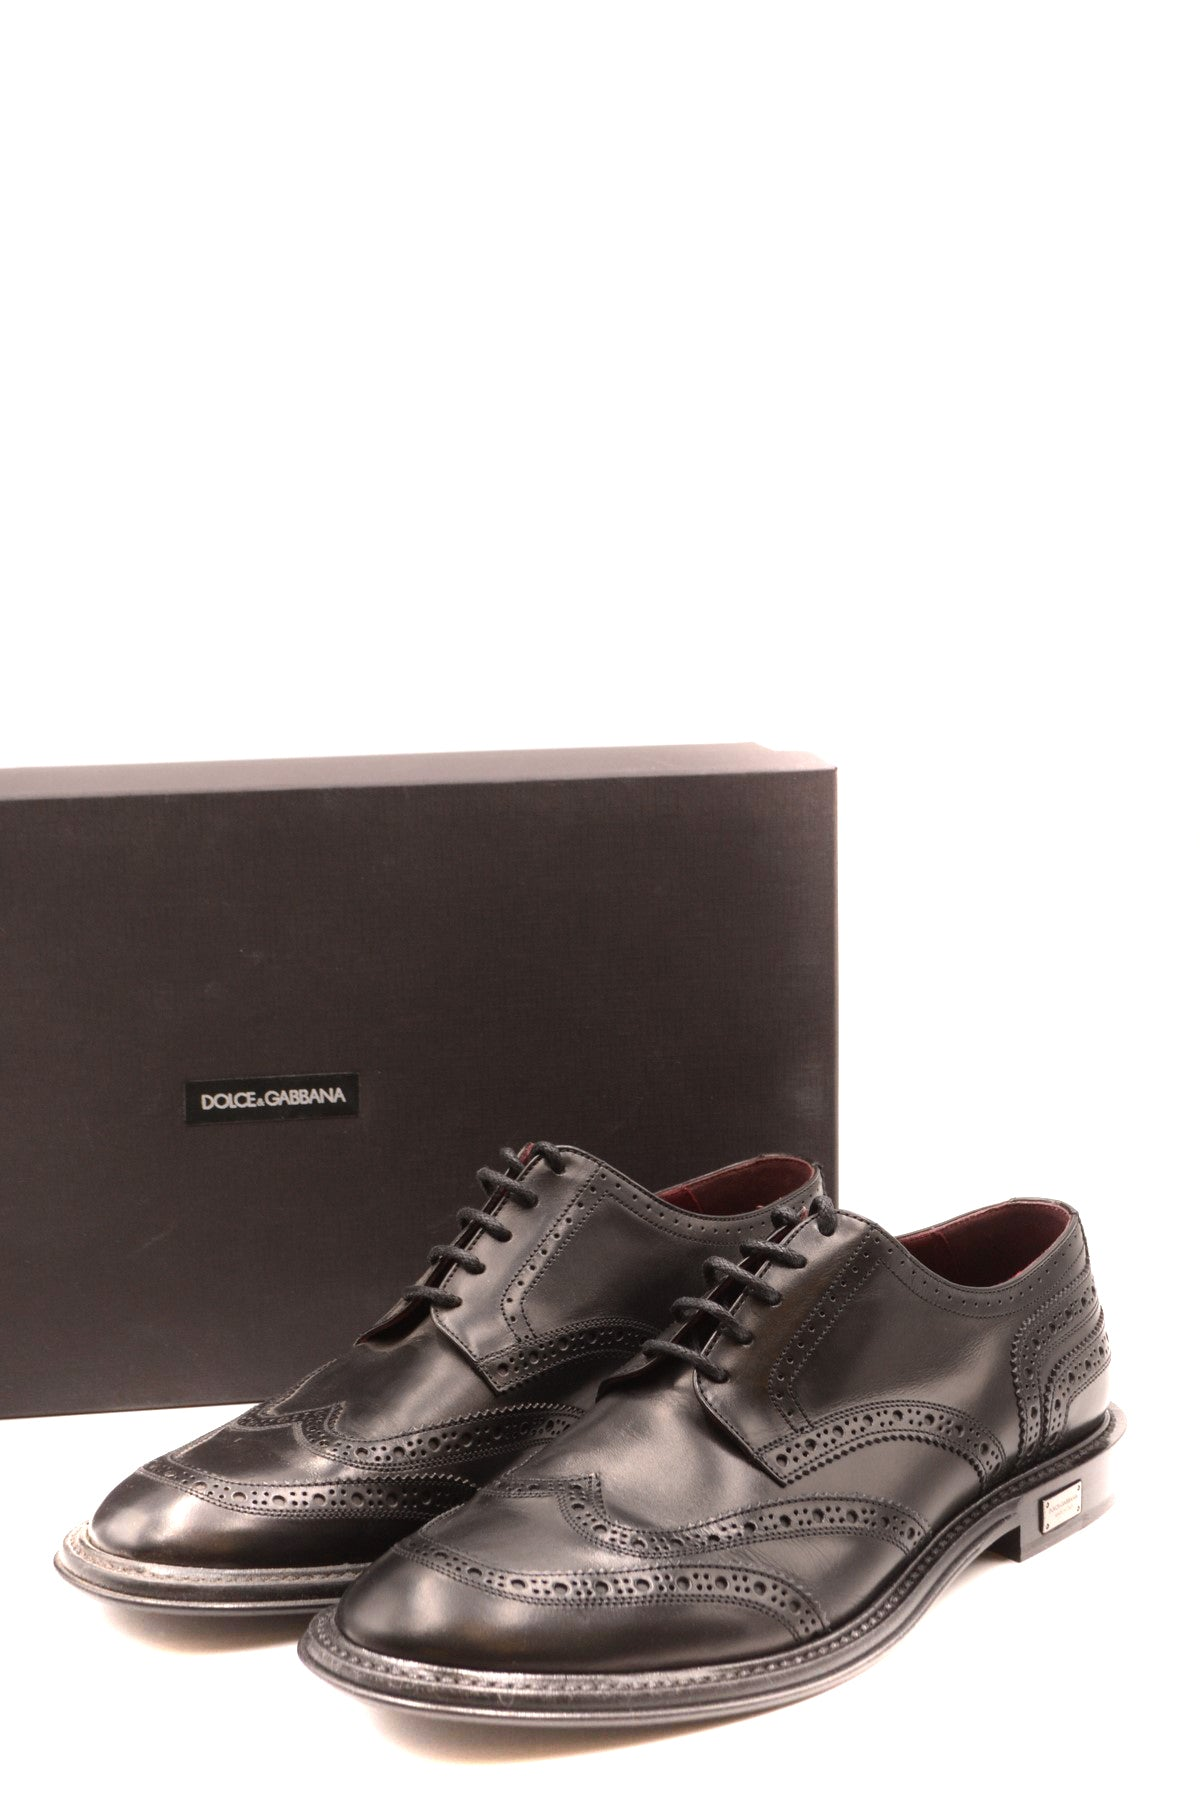 Shoes Dolce & Gabbana-Men's Fashion - Men's Shoes - Oxfords-Product Details Size: EuGender: ManMade In: ItalySeason: Fall / WinterType Of Accessory: ShoesMain Color: BlackTerms: New With LabelComposition: Leather 100%Year: 2019Manufacturer Part Number: A10421 Az895 80999 Nero-Keyomi-Sook